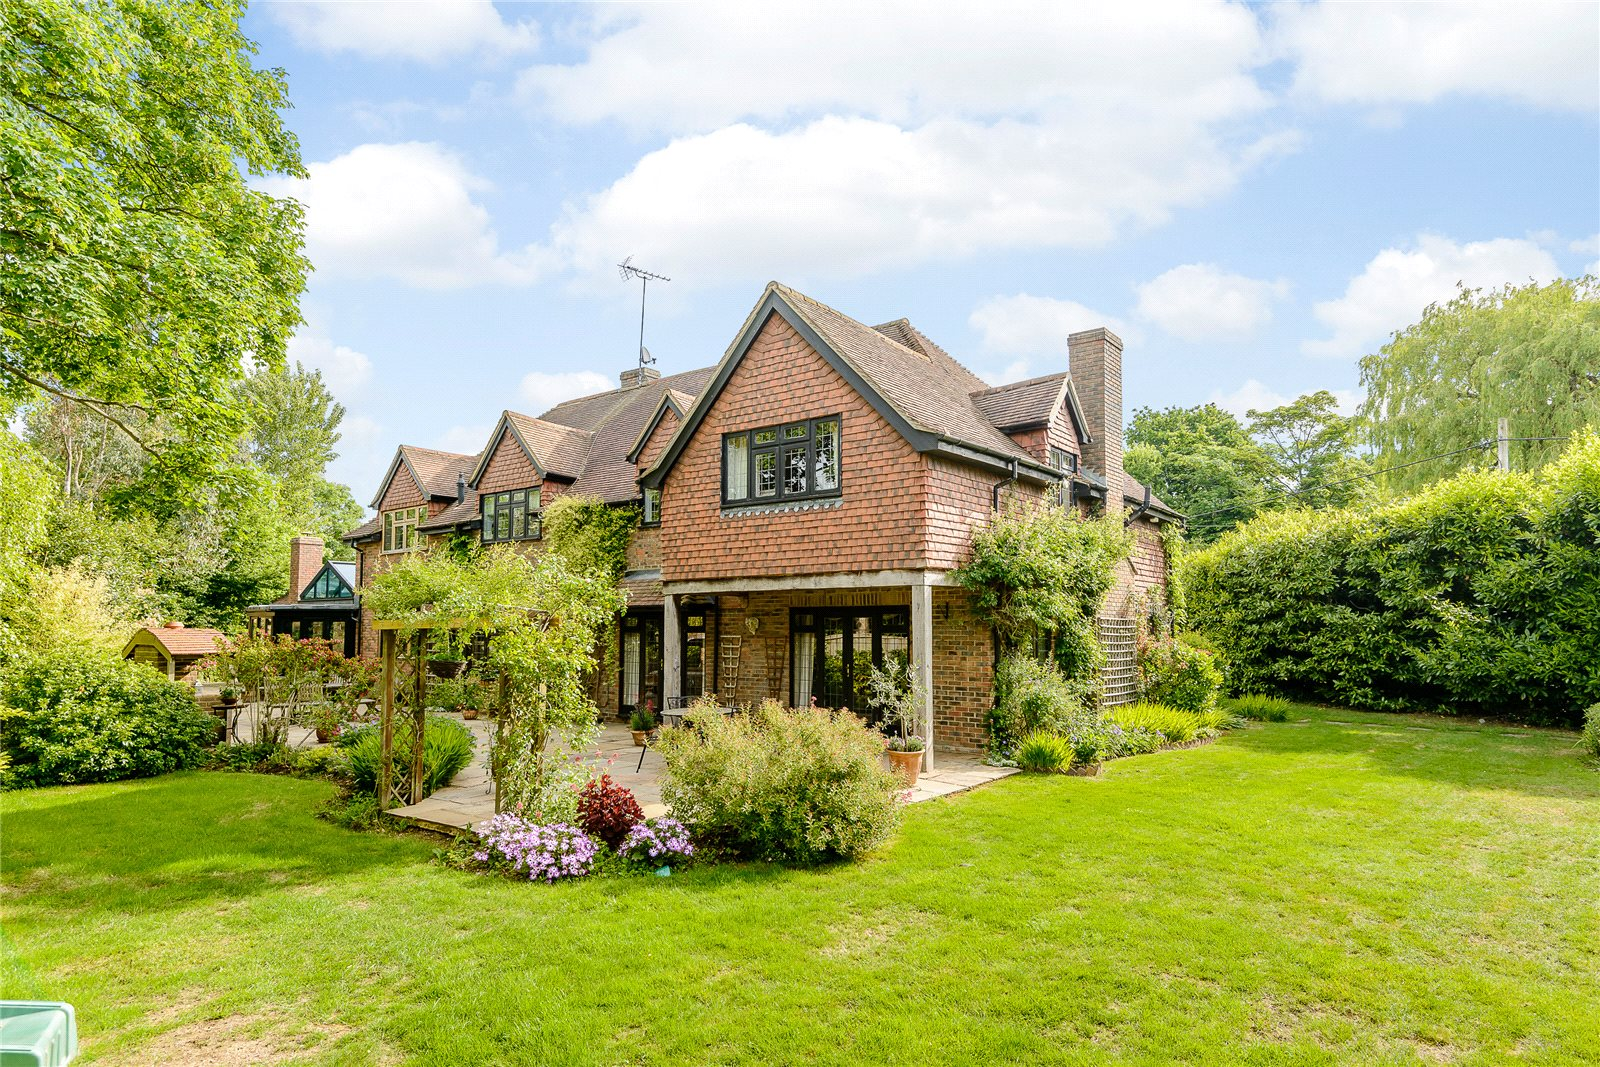 Single Family Home for Sale at Winkfield Street, Maidens Green, Windsor, Berkshire, SL4 Windsor, England